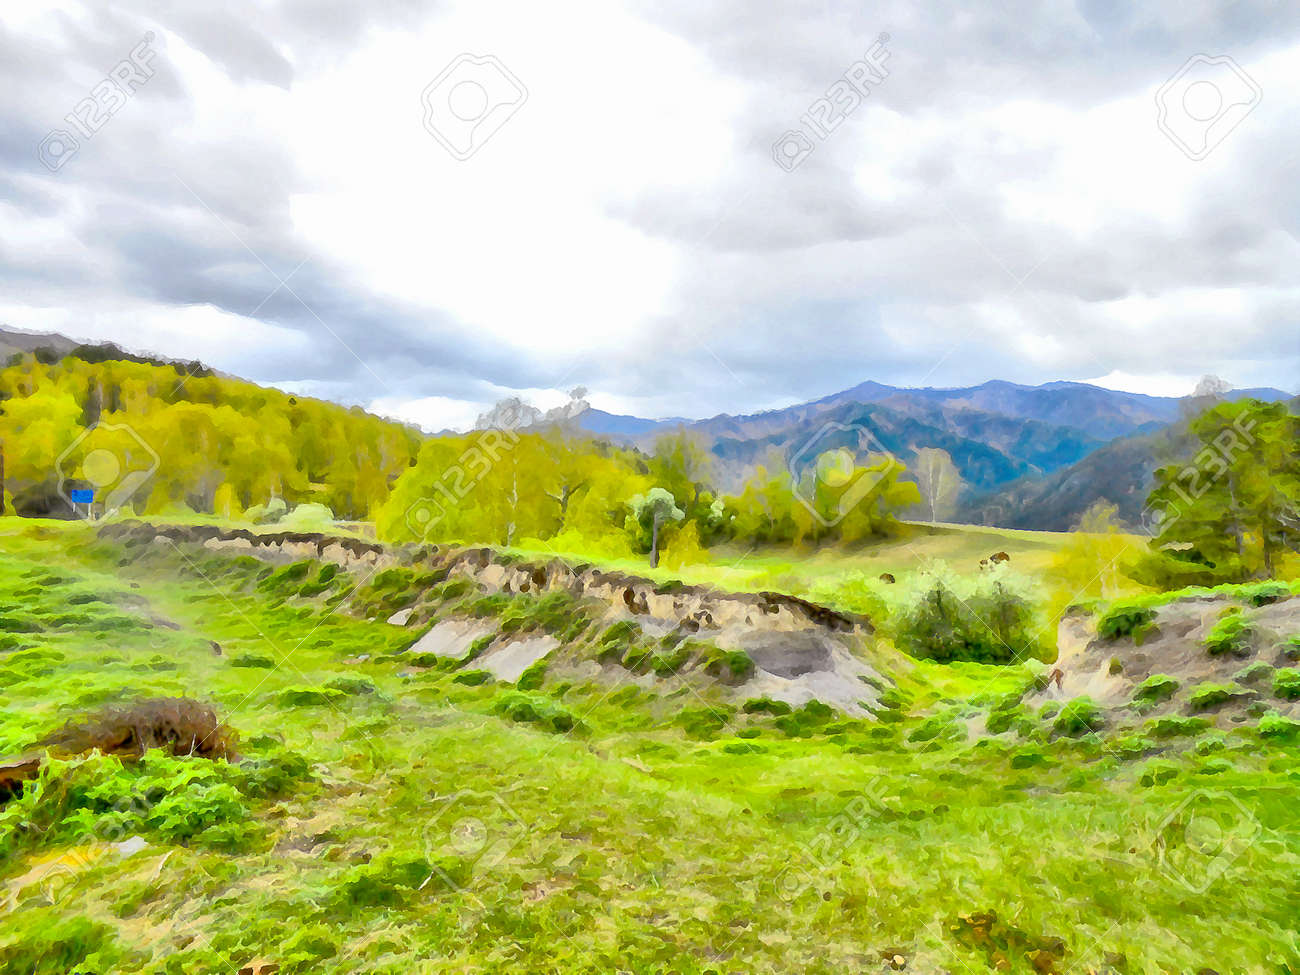 Background watercolor painting of a grassy field road mountains background watercolor painting of a grassy field road mountains and river stock photo 63835016 voltagebd Images